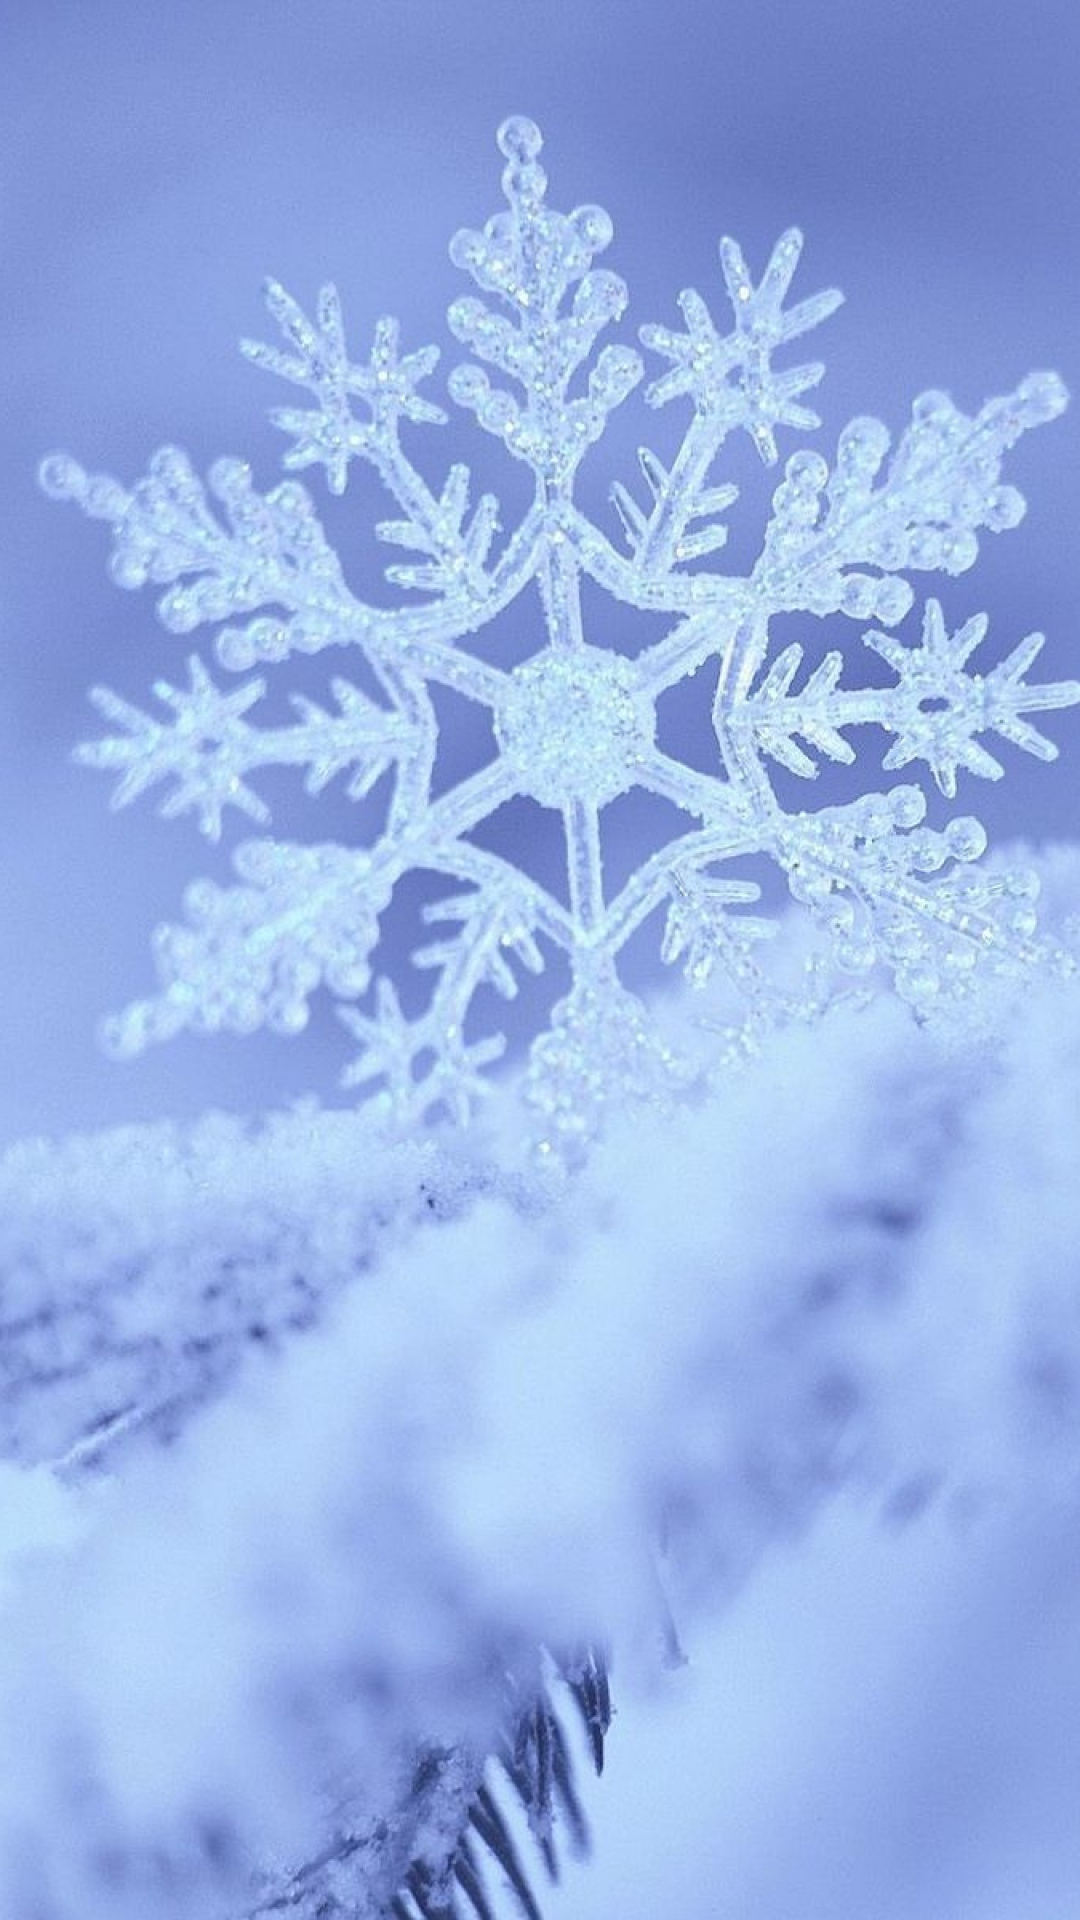 Winter Backgrounds for Iphone HD 1080x1920